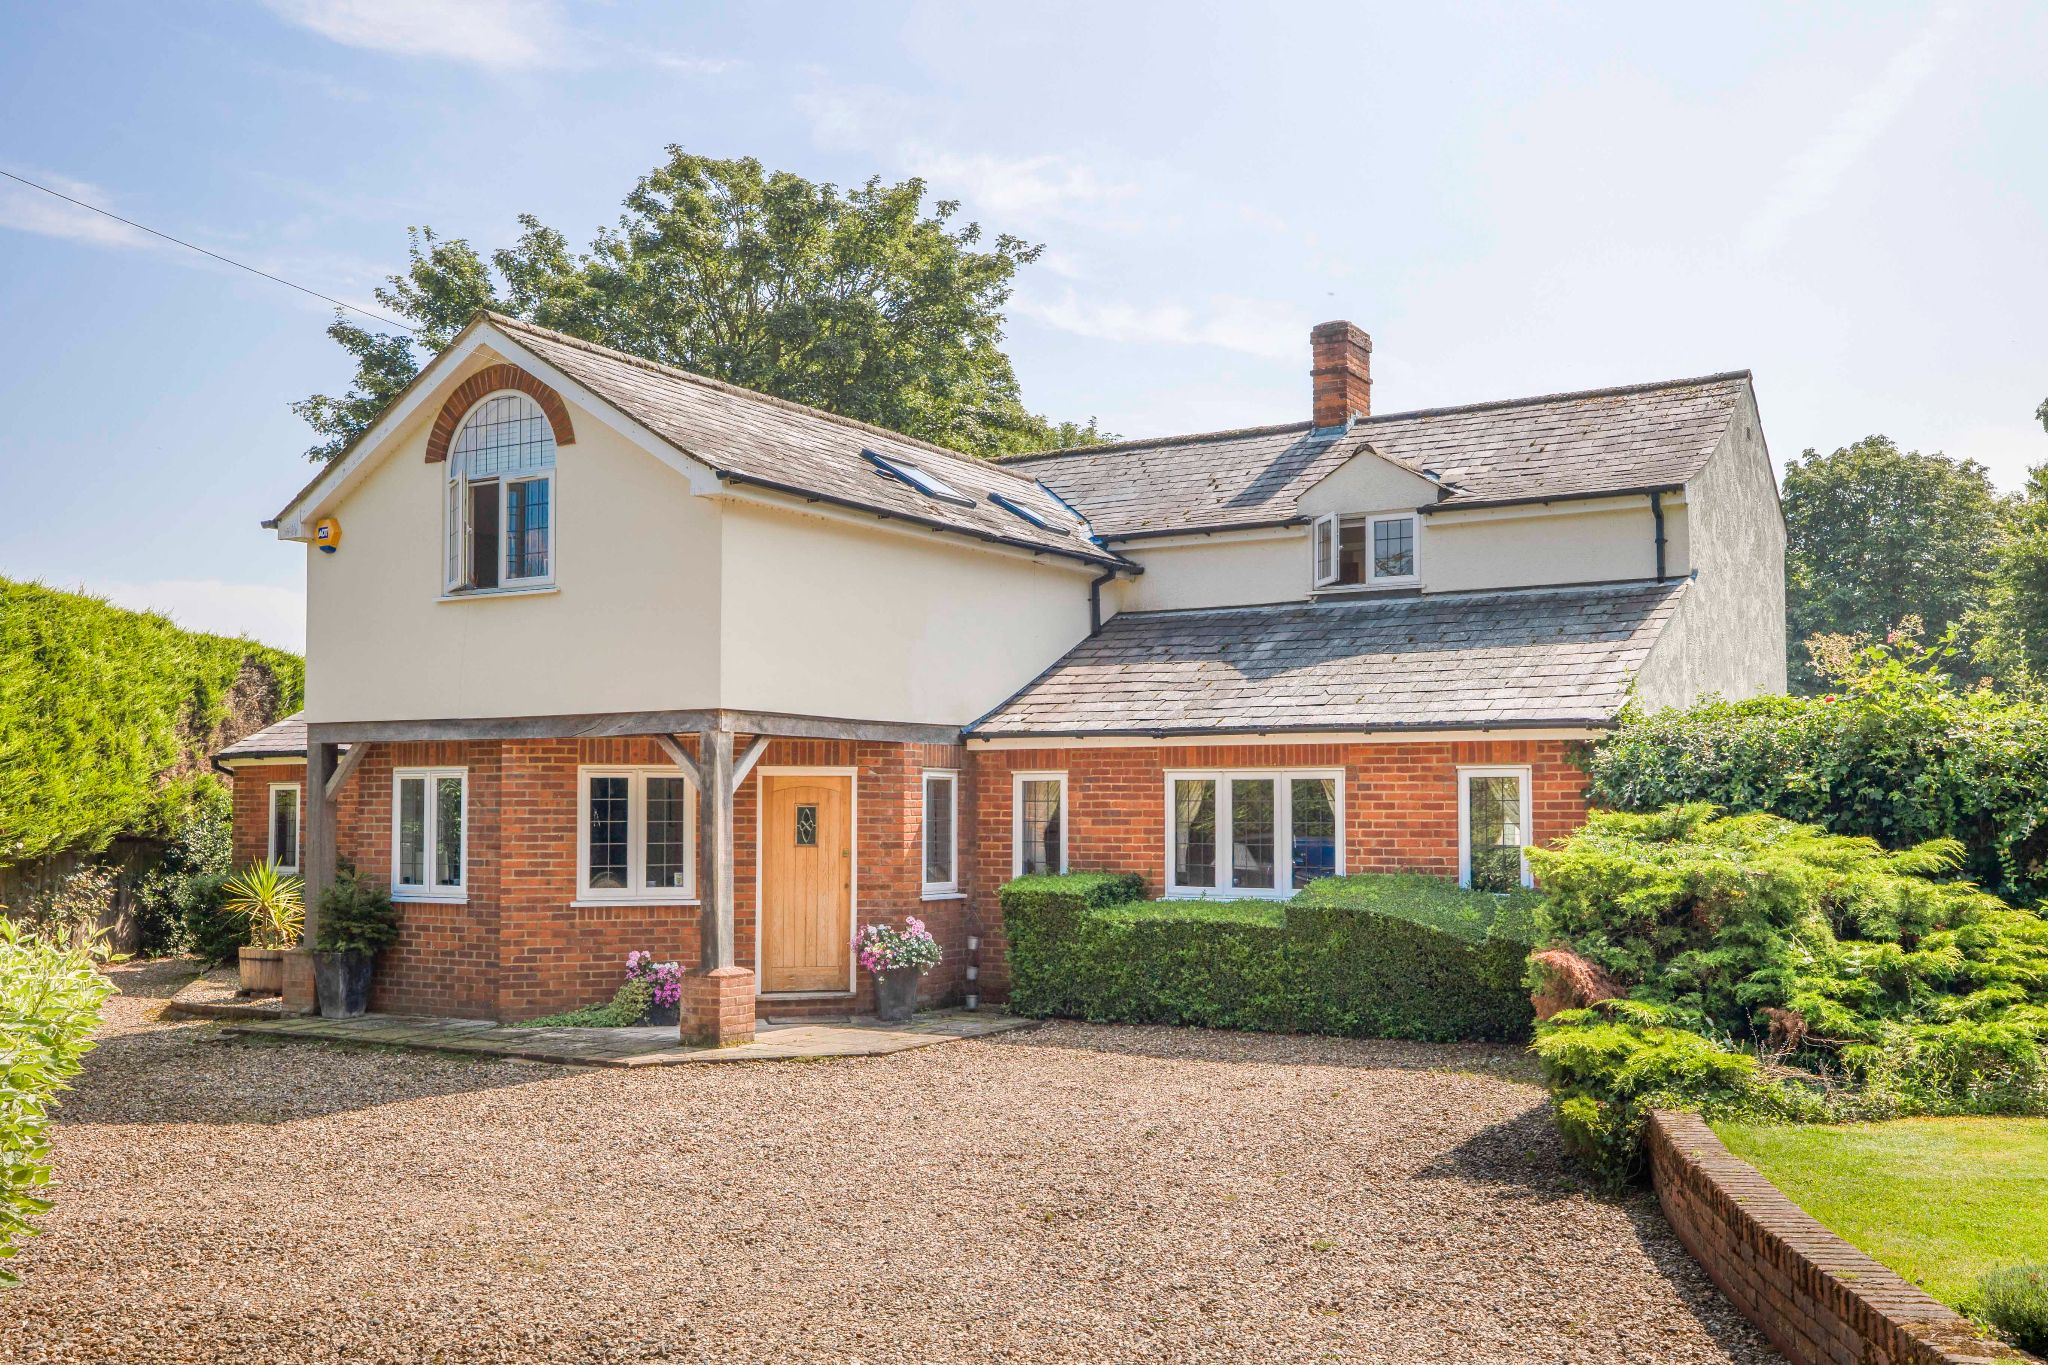 5 bedroom detached house For Sale in Hertford - Property photograph